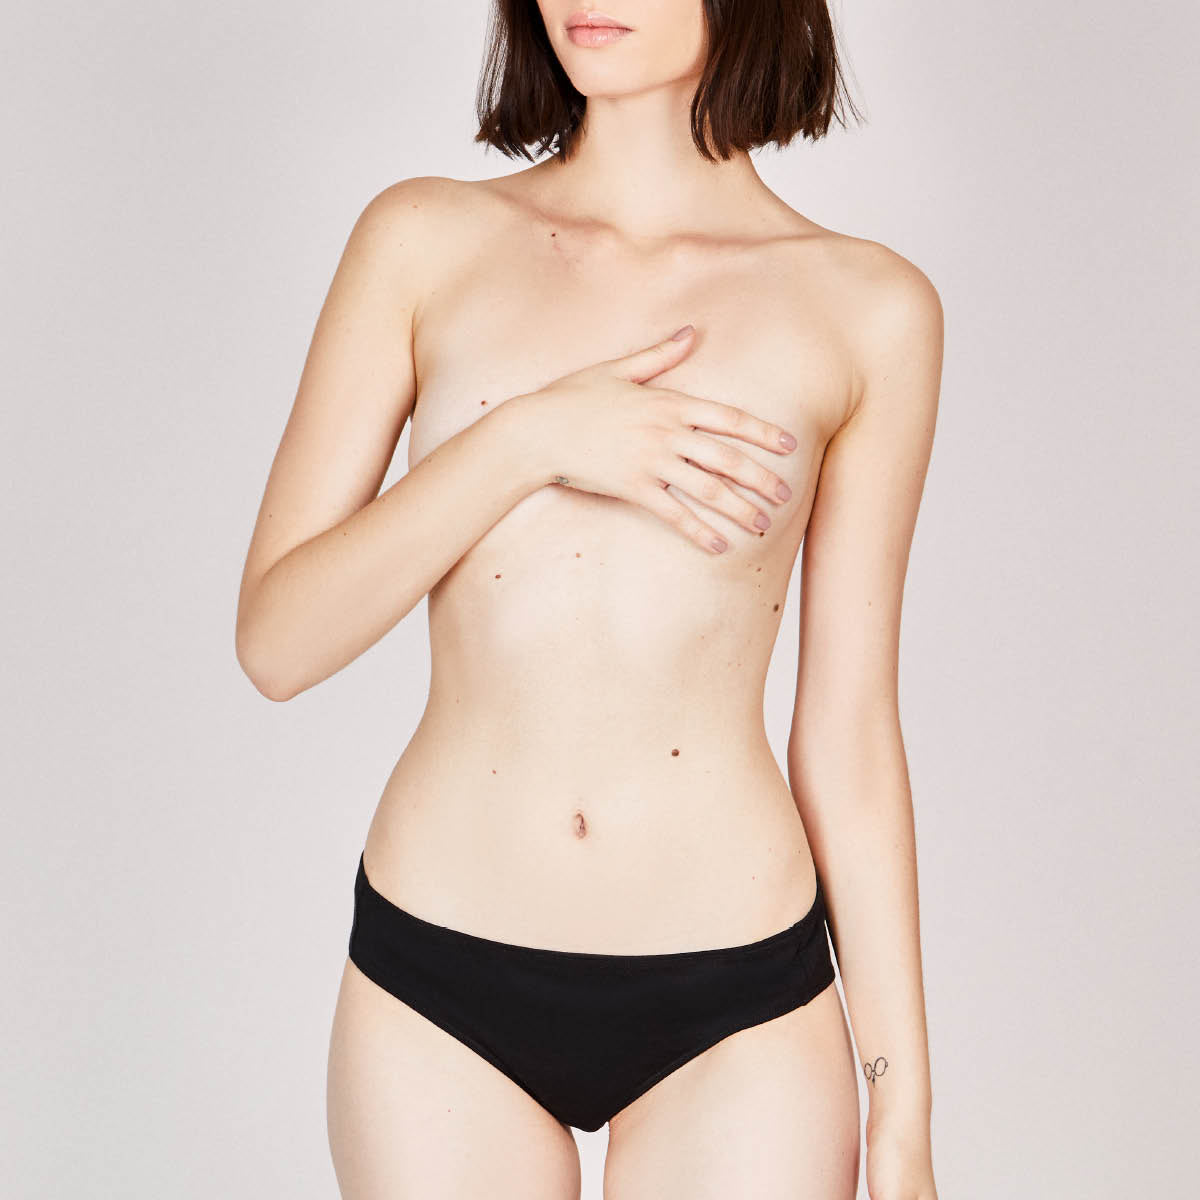 Woman wearing an organic cotton thong in black, low waist.